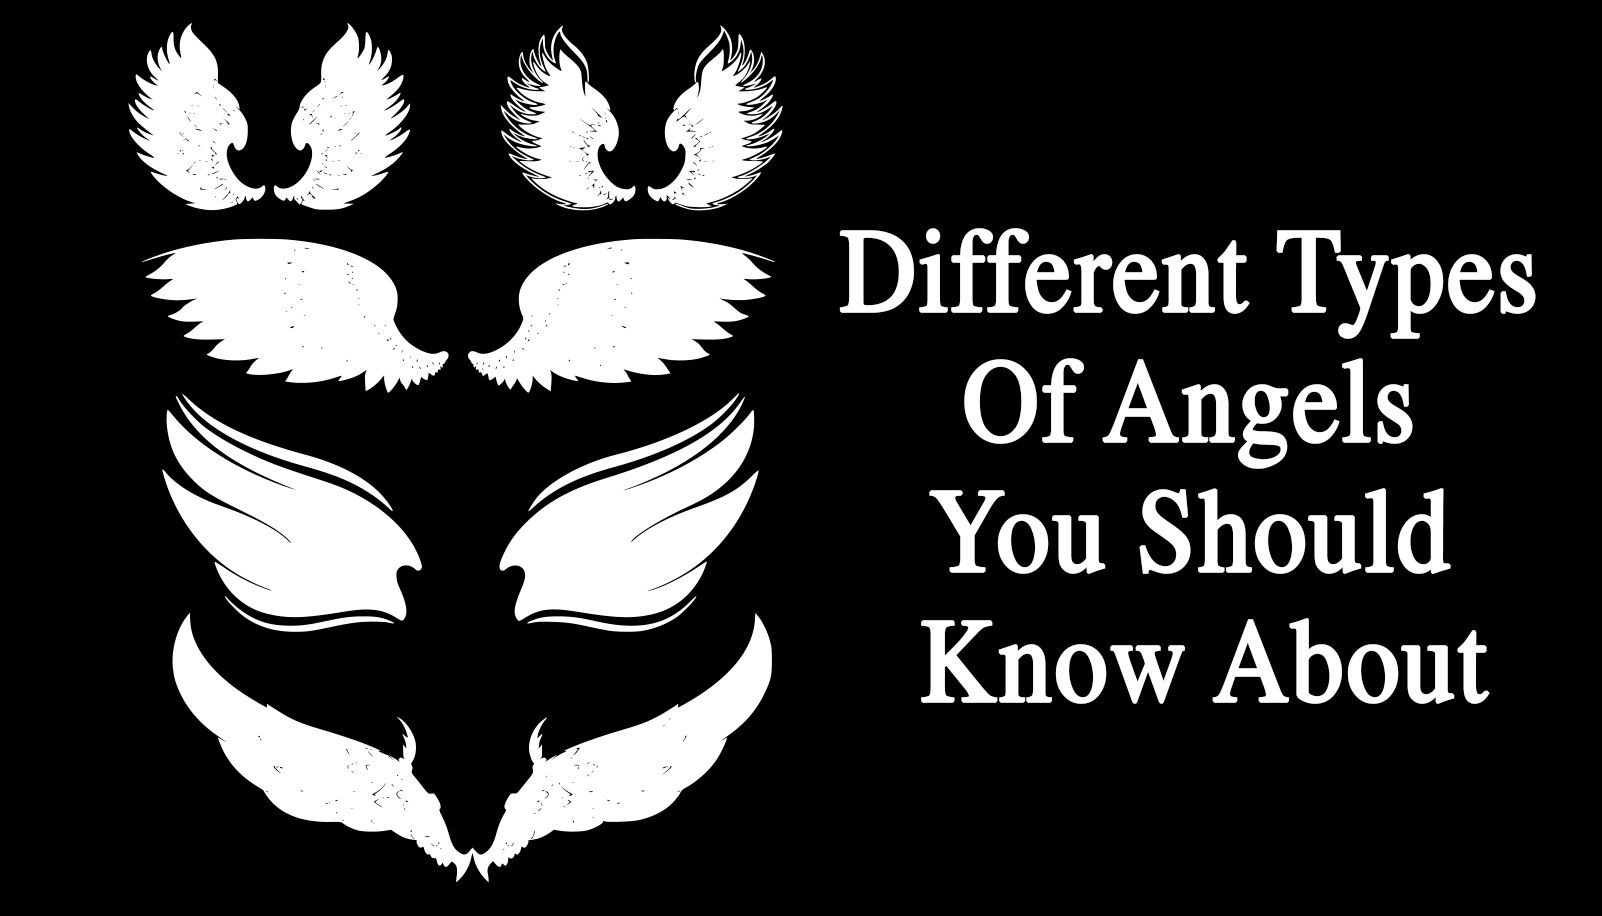 Different Types Of Angels You Should Know About